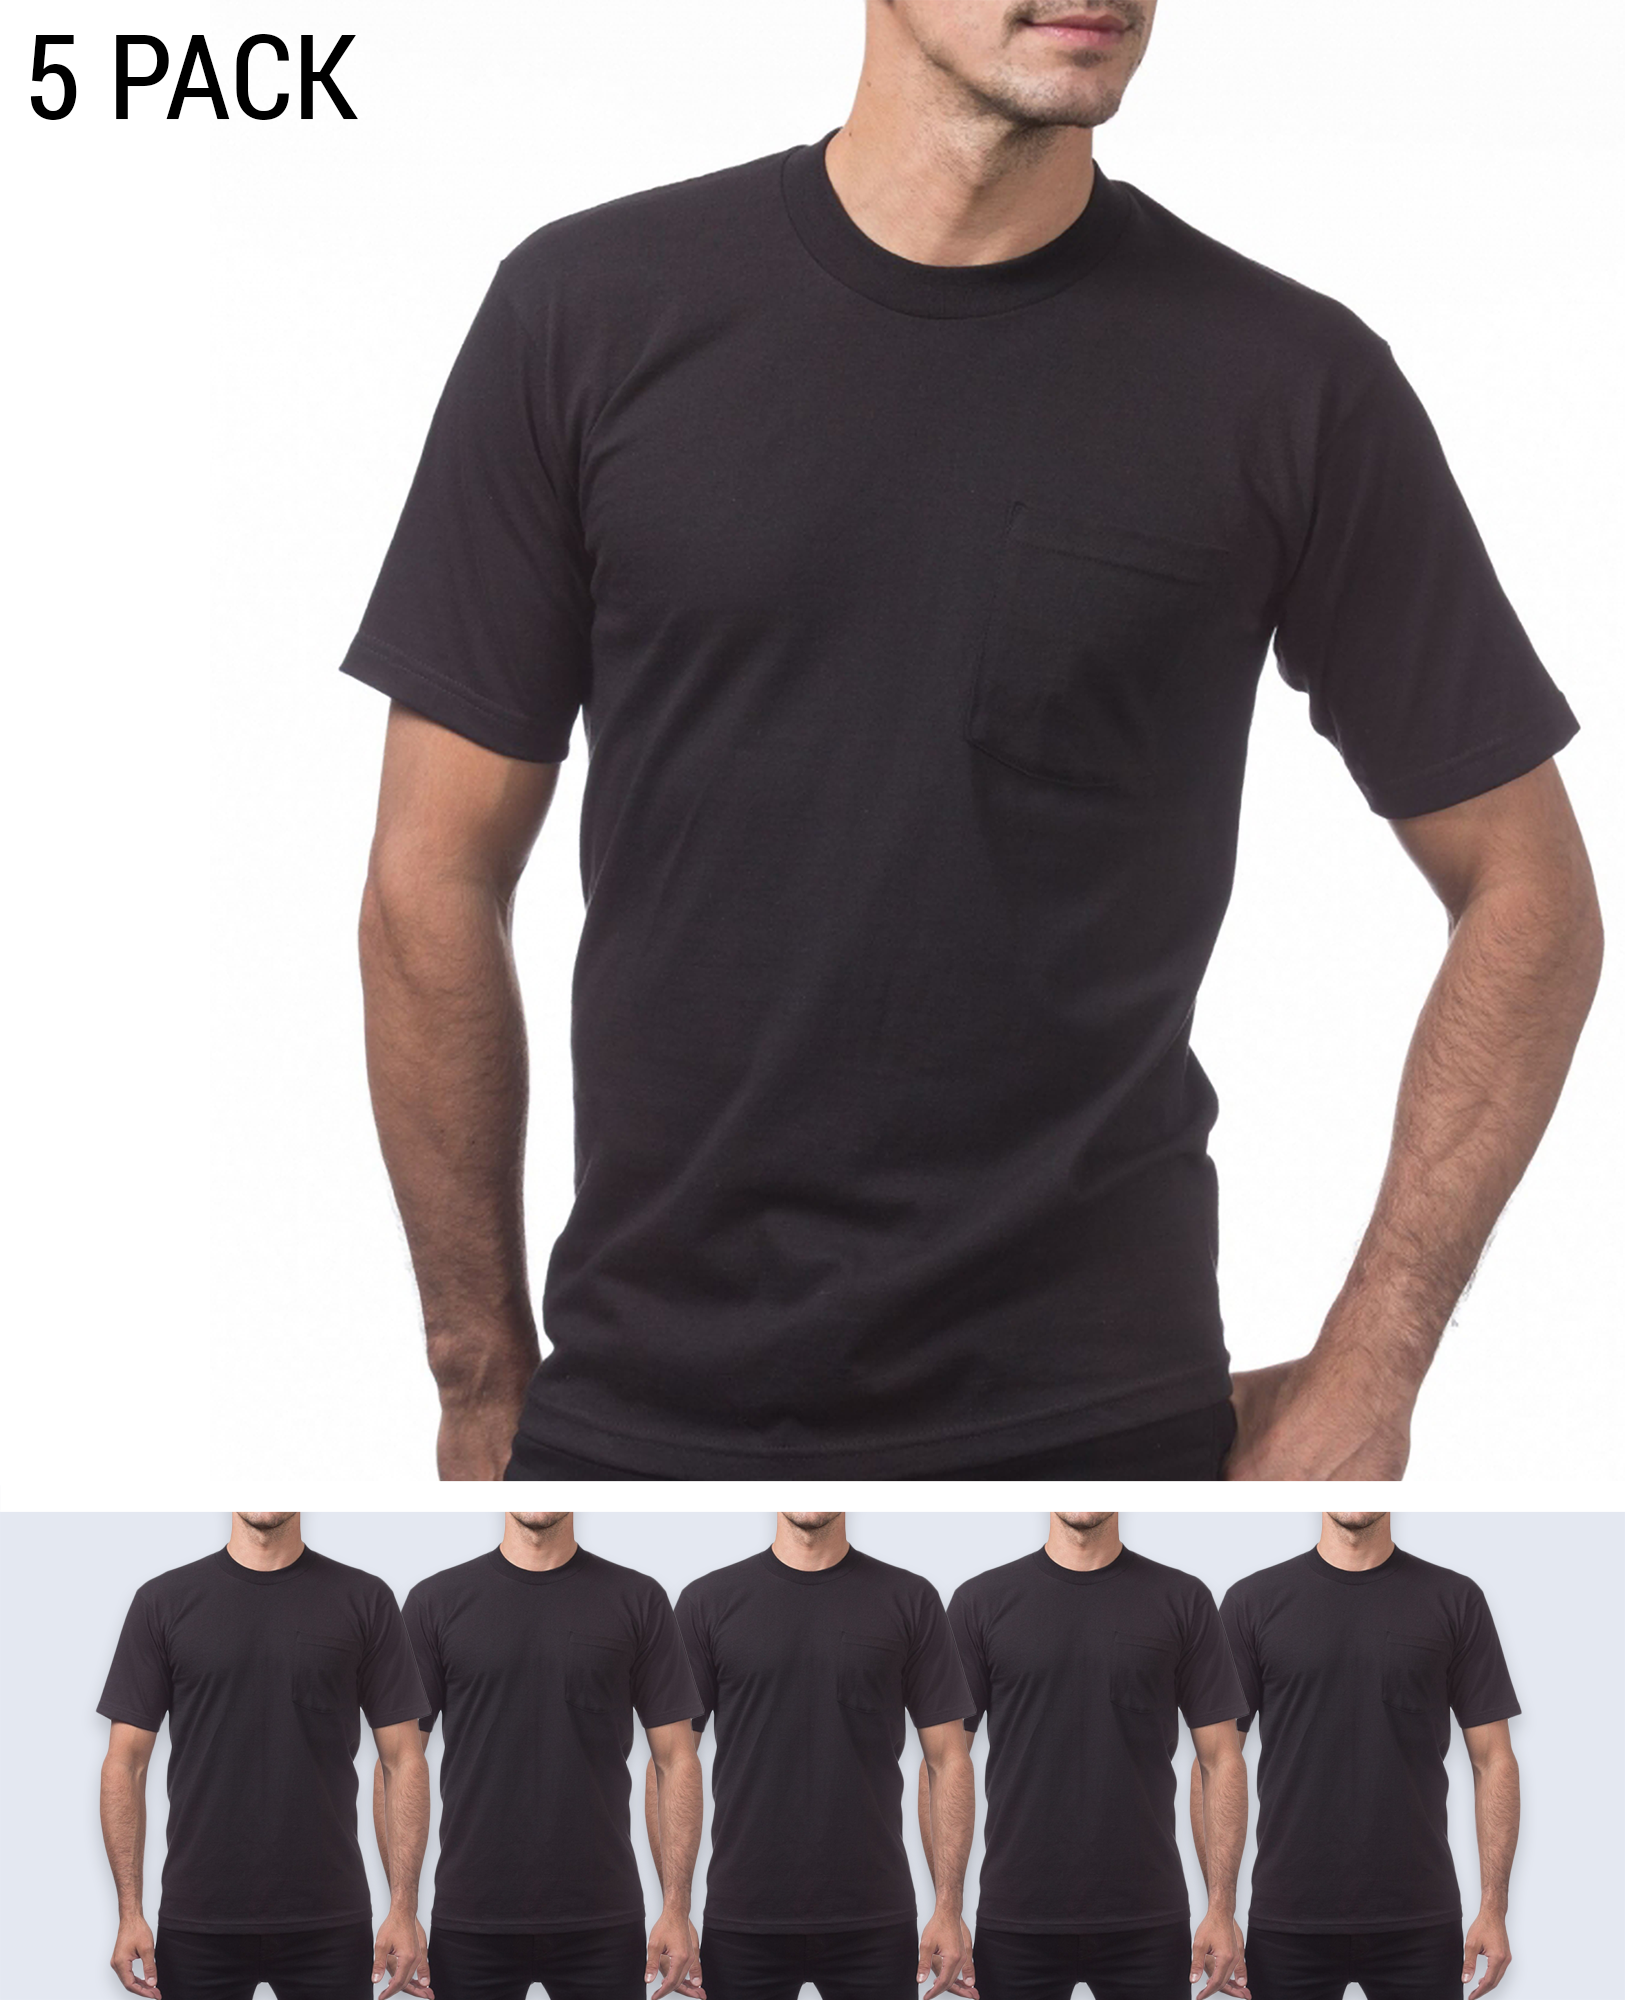 5 pack Heavyweight Pocket T-shirt - T-Shirts - Pro Club - BRANMA